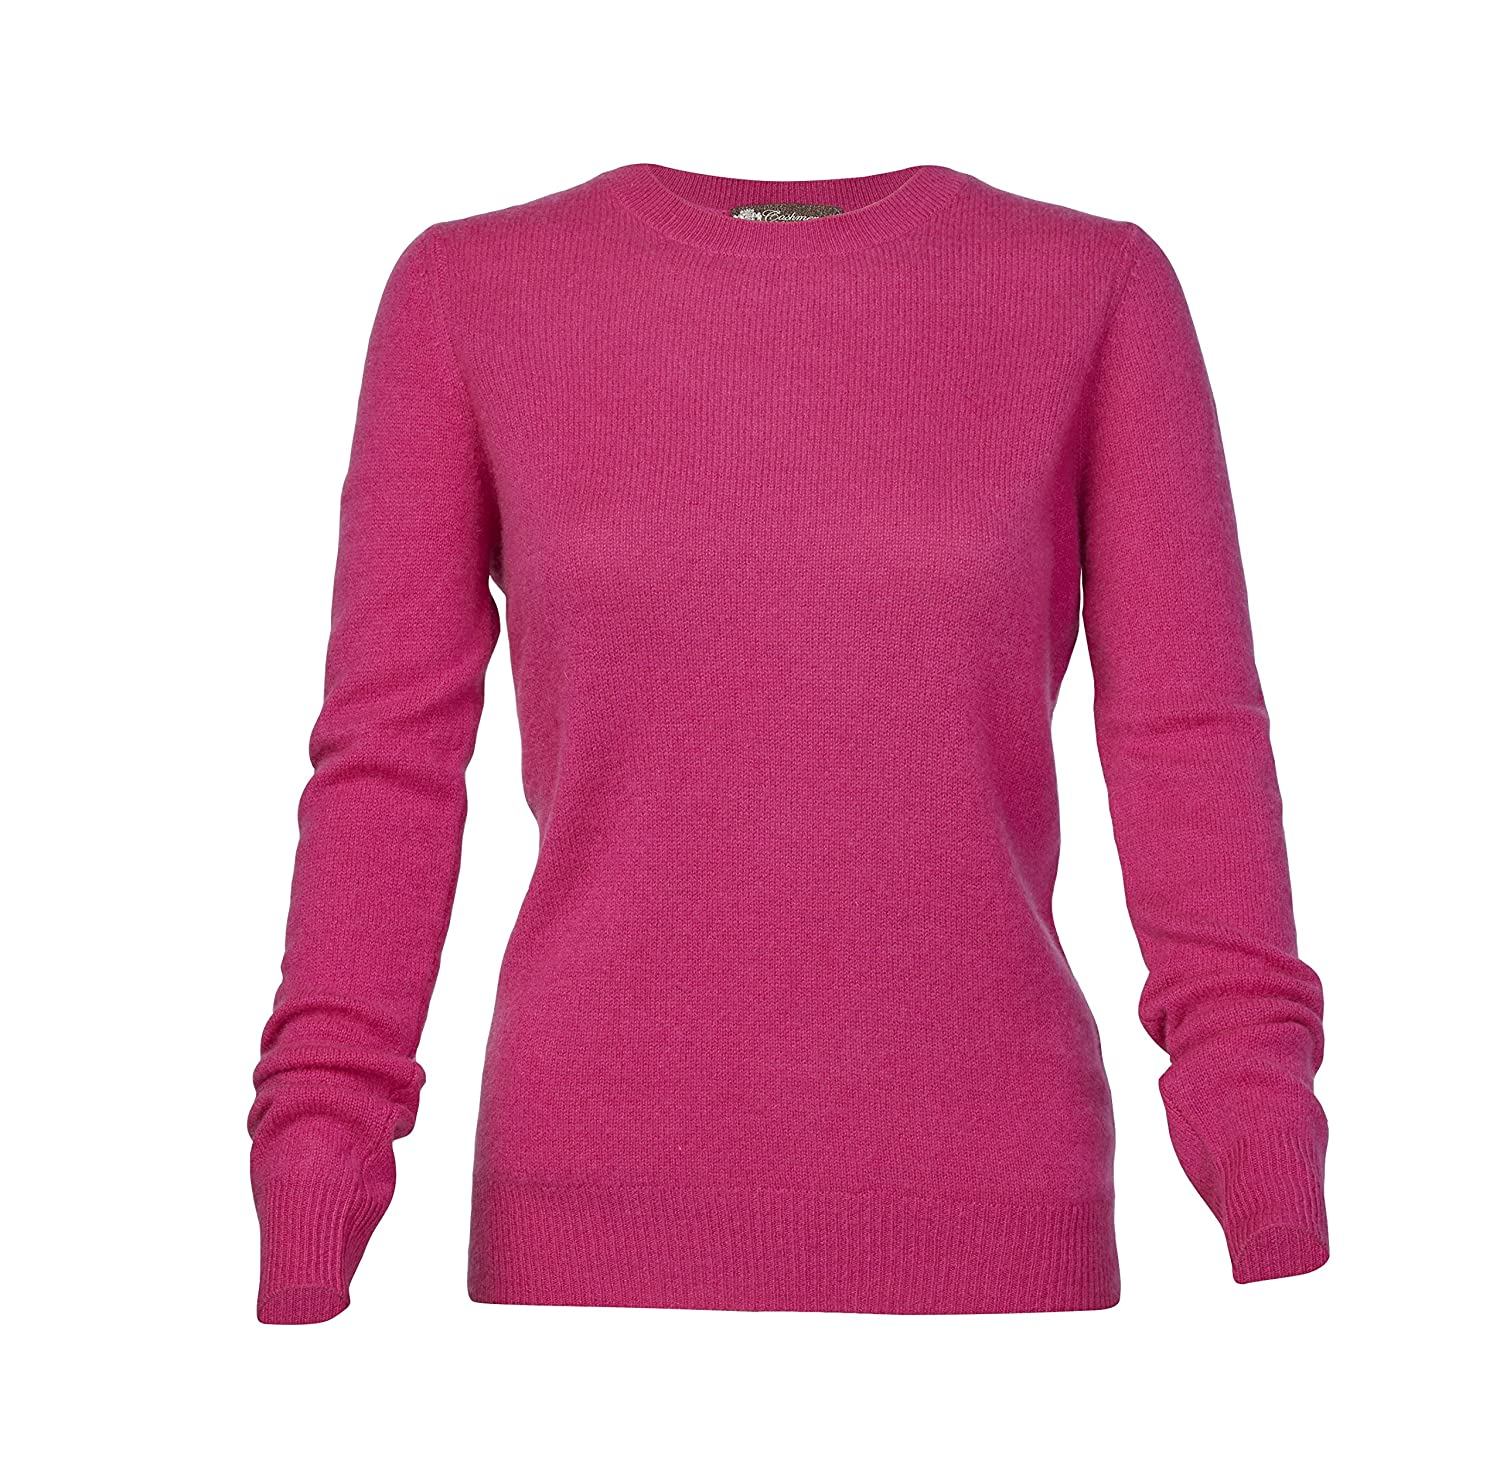 Women's Crew Neck Cashmere Sweater at Amazon Women's Clothing ...